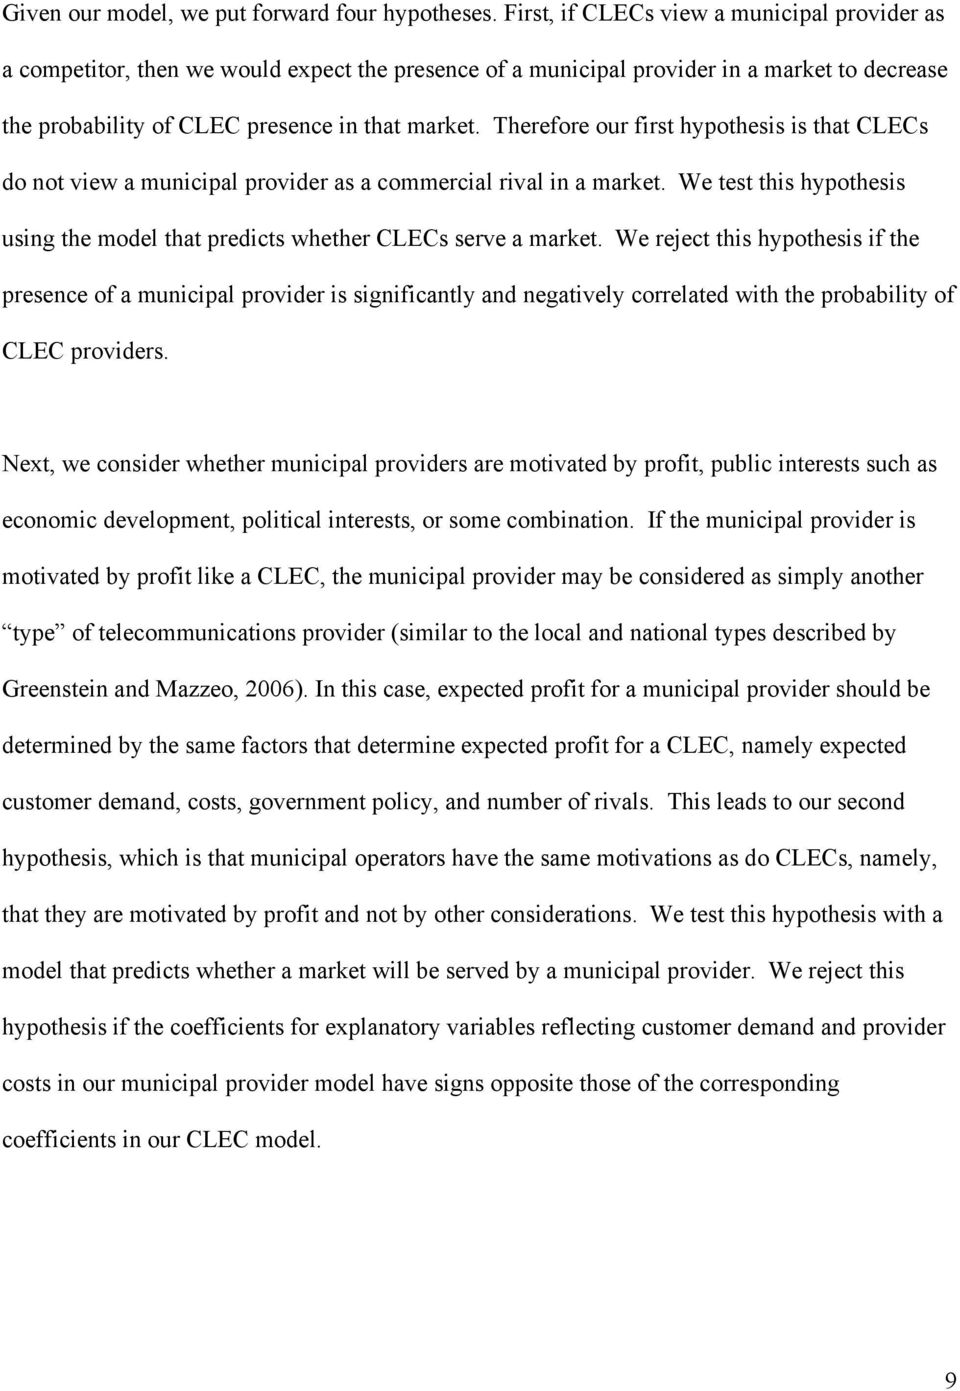 Therefore our first hypothesis is that CLECs do not view a municipal provider as a commercial rival in a market. We test this hypothesis using the model that predicts whether CLECs serve a market.